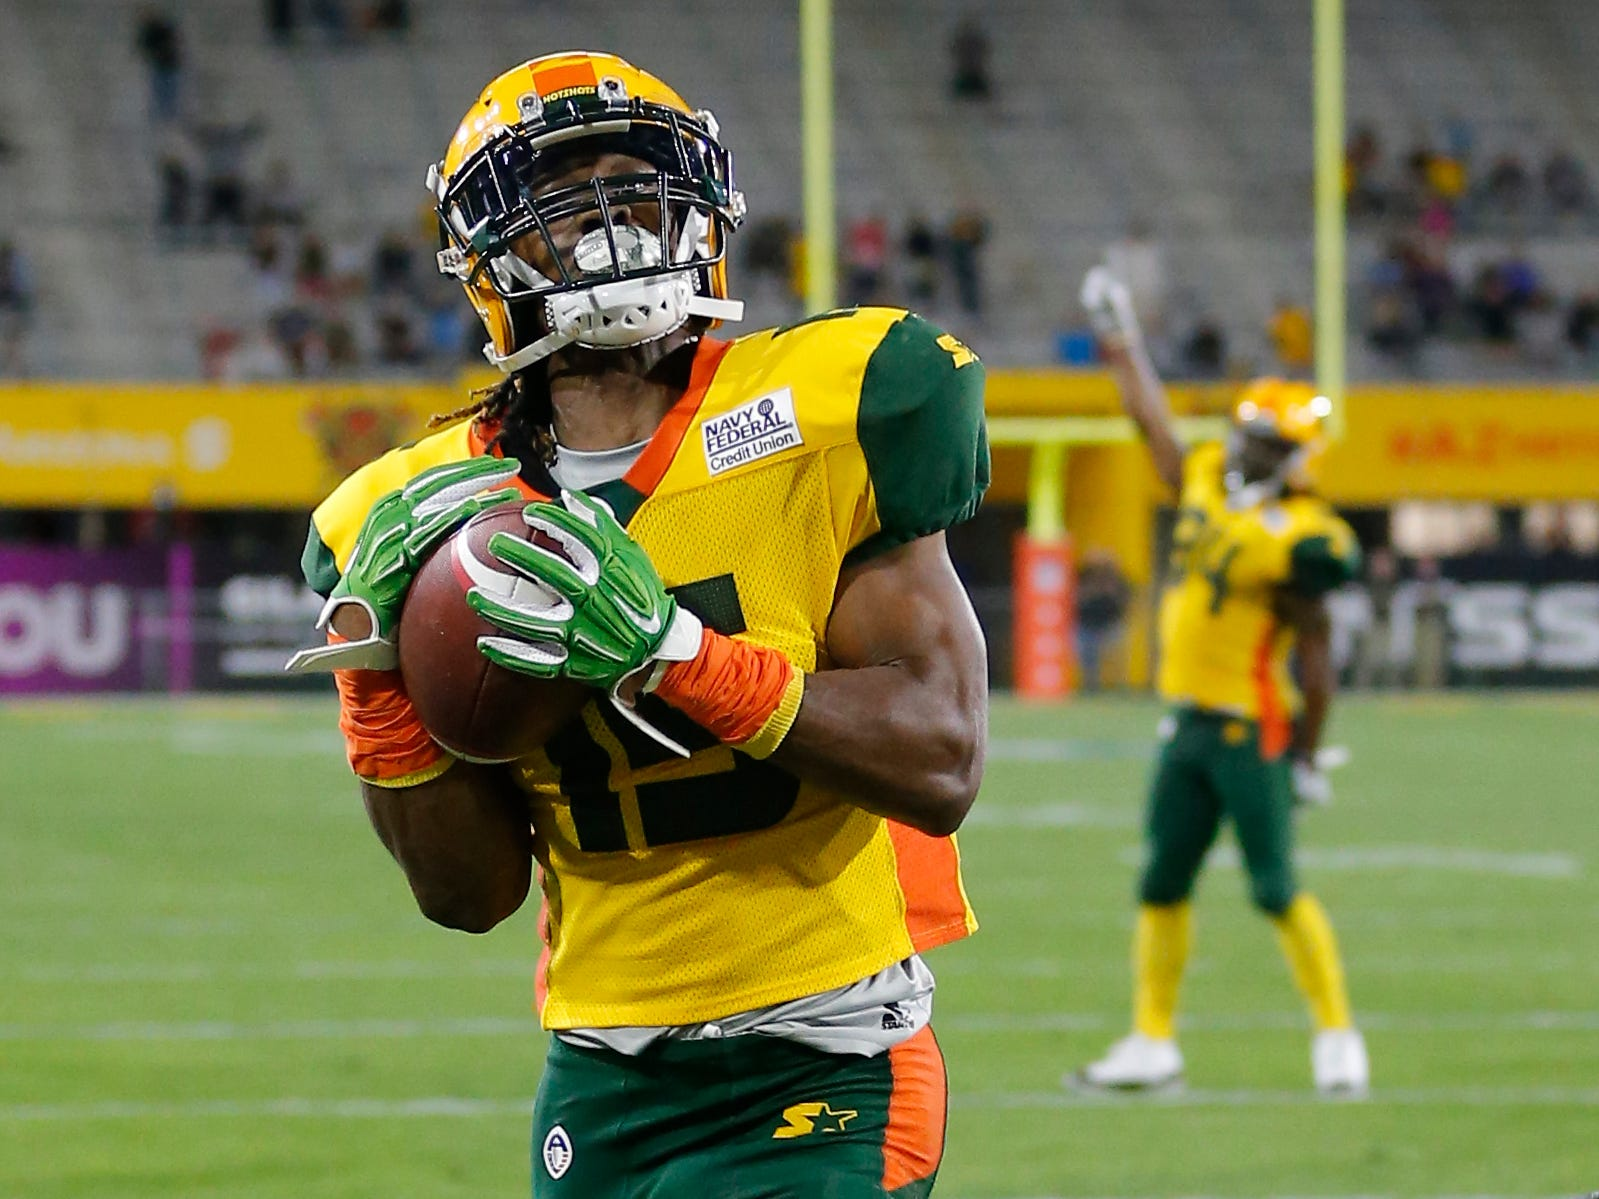 Arizona Hotshots wide receiver Rashad Ross (15) catches a touchdown against the Atlanta Legends in the second half during an AAF football game, Sunday, March 3, 2019, at Sun Devil Stadium in Phoenix.